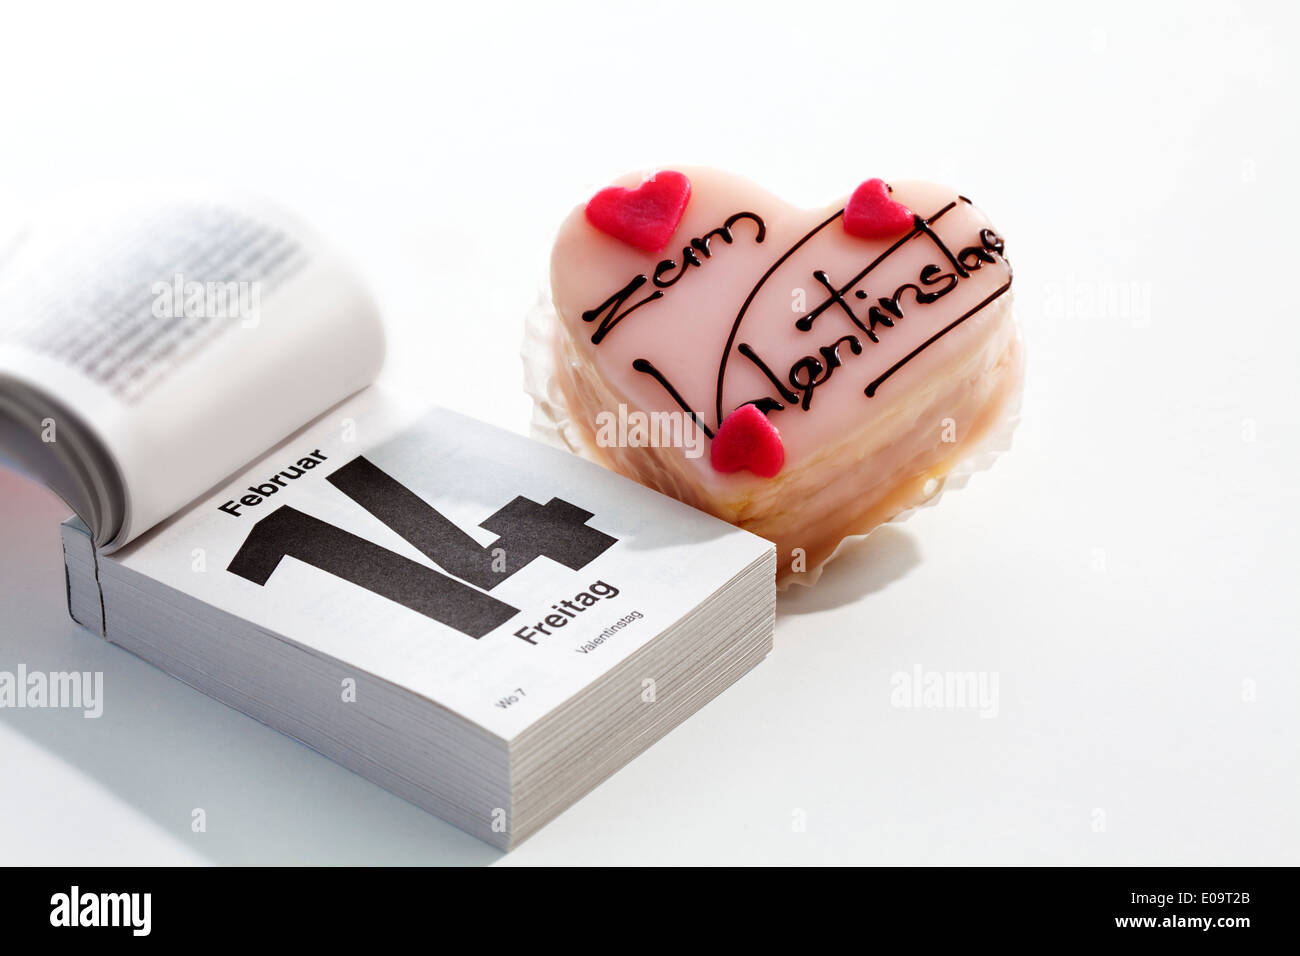 Petit four and tear-off calendar showing date of Valentine's day on white ground - Stock Image